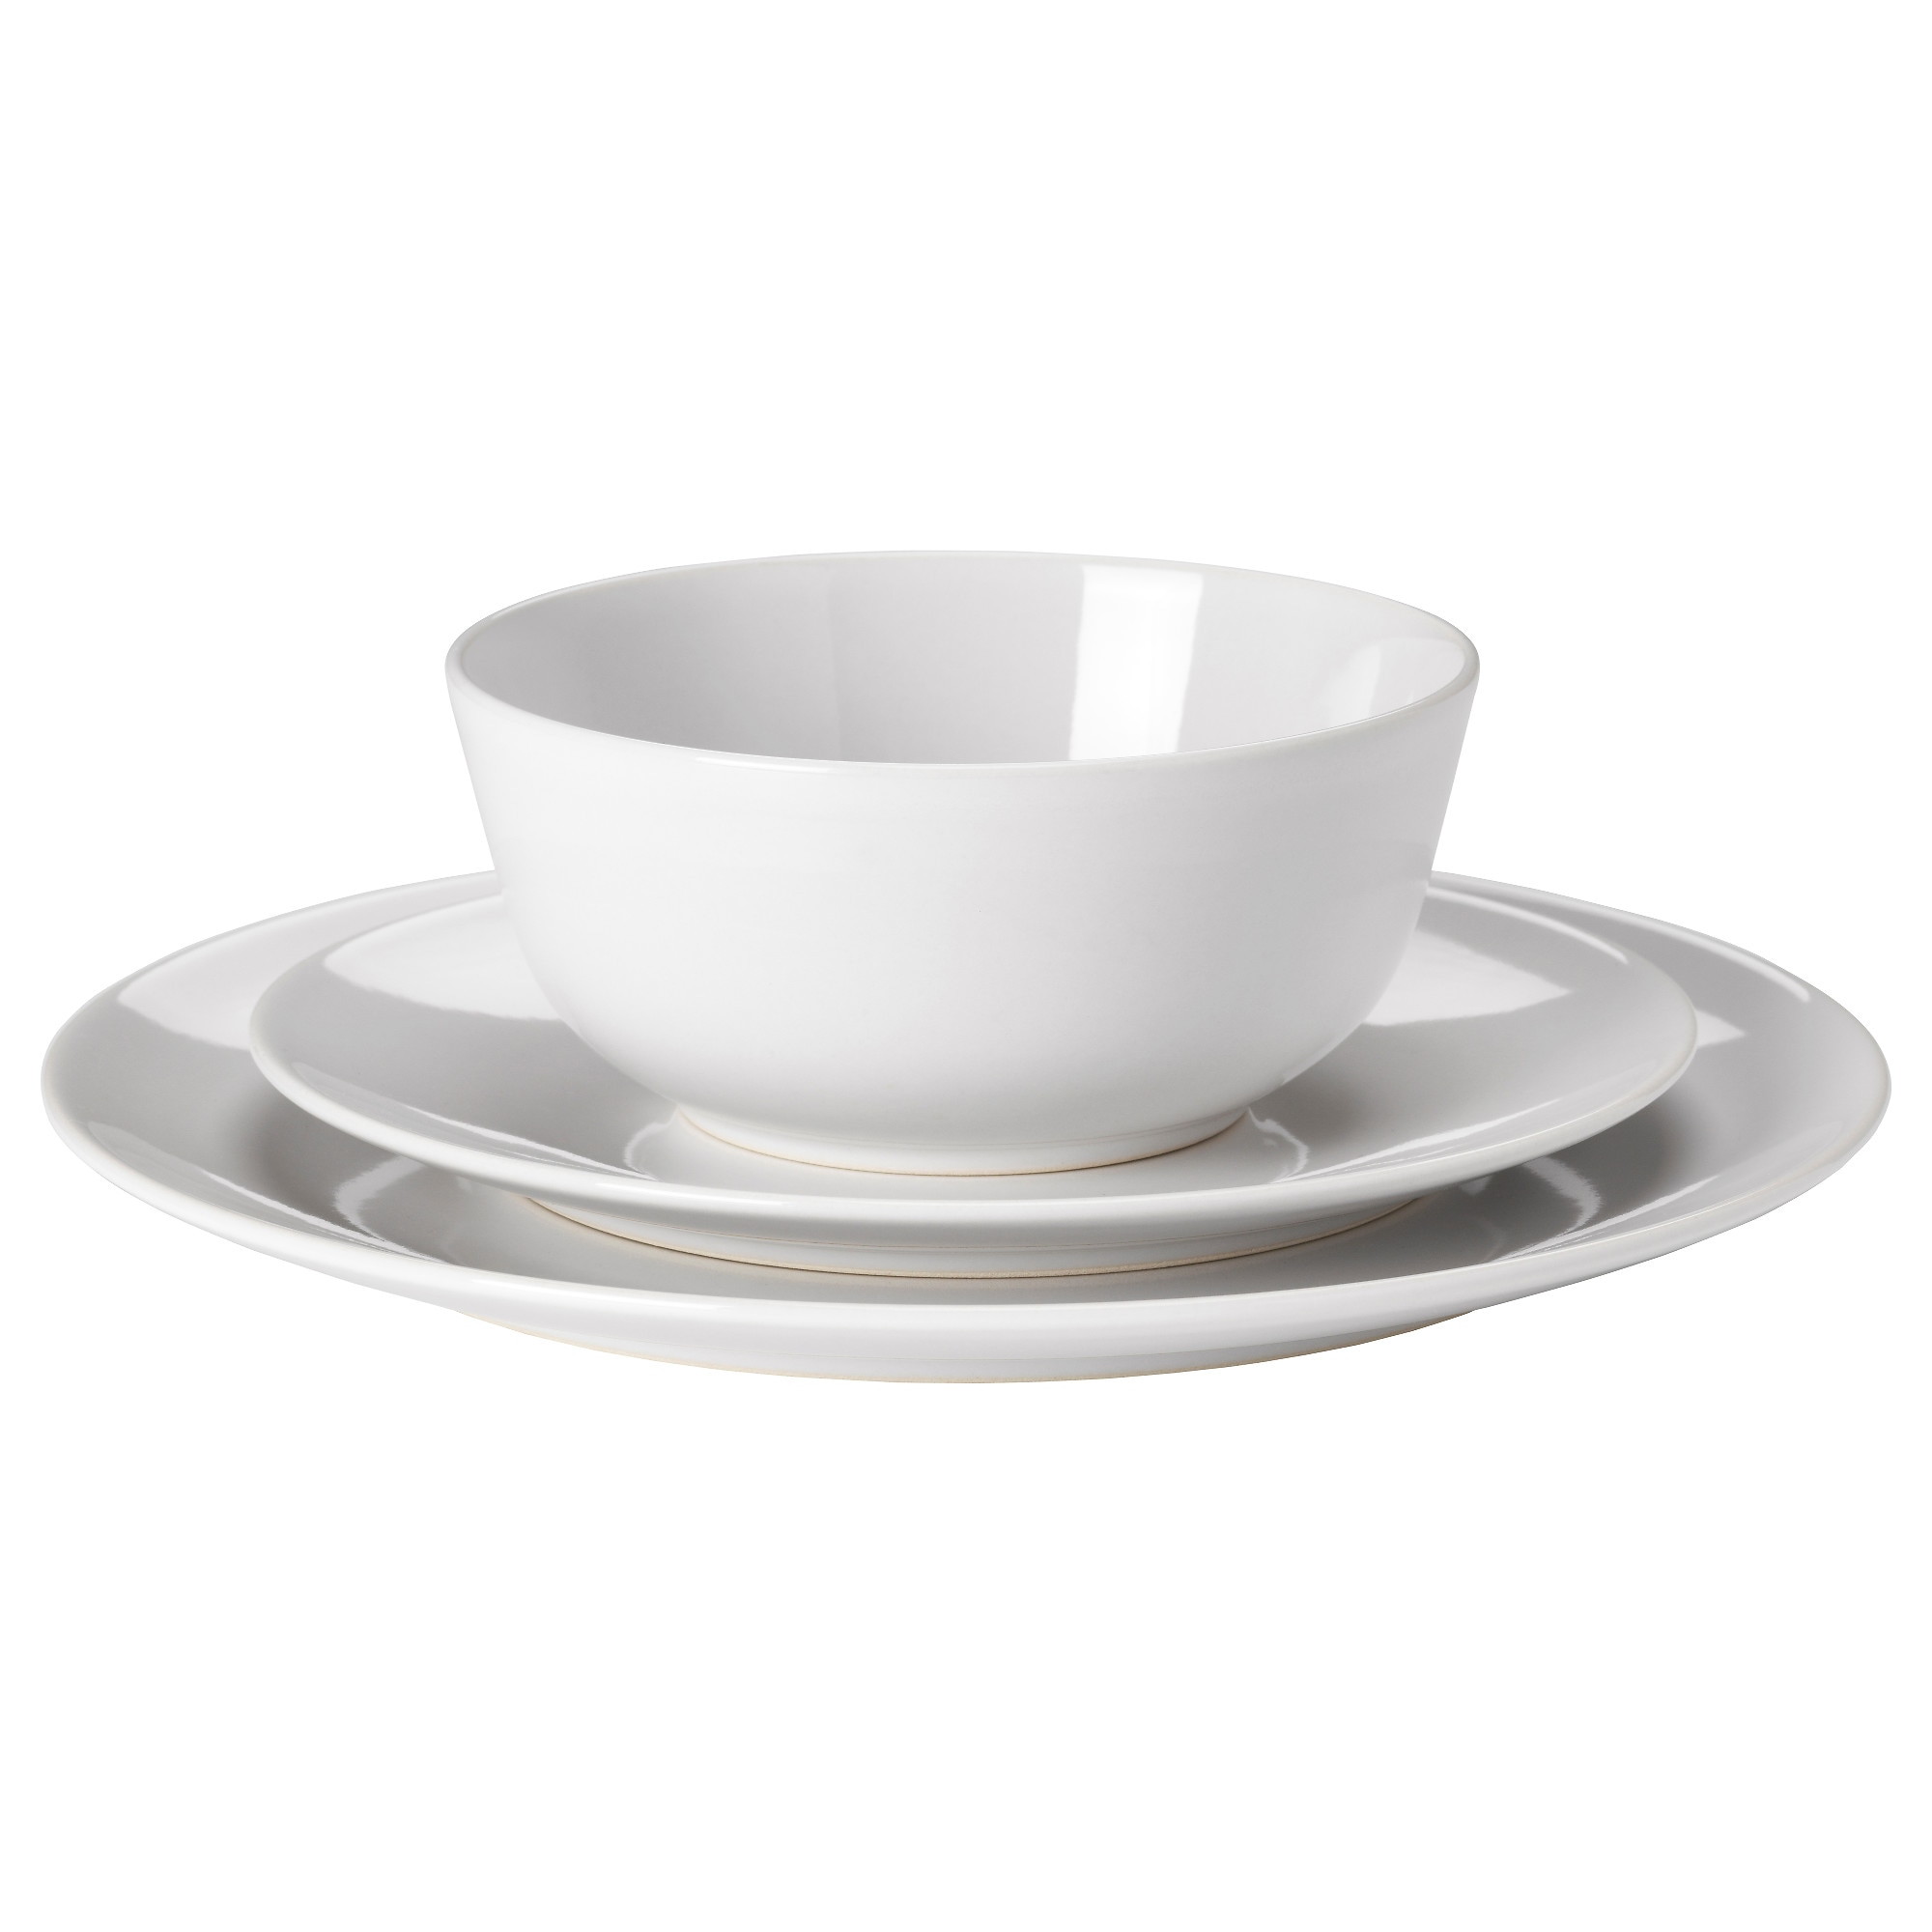 flitighet piece dinnerware set. dinnerware sets  ikea